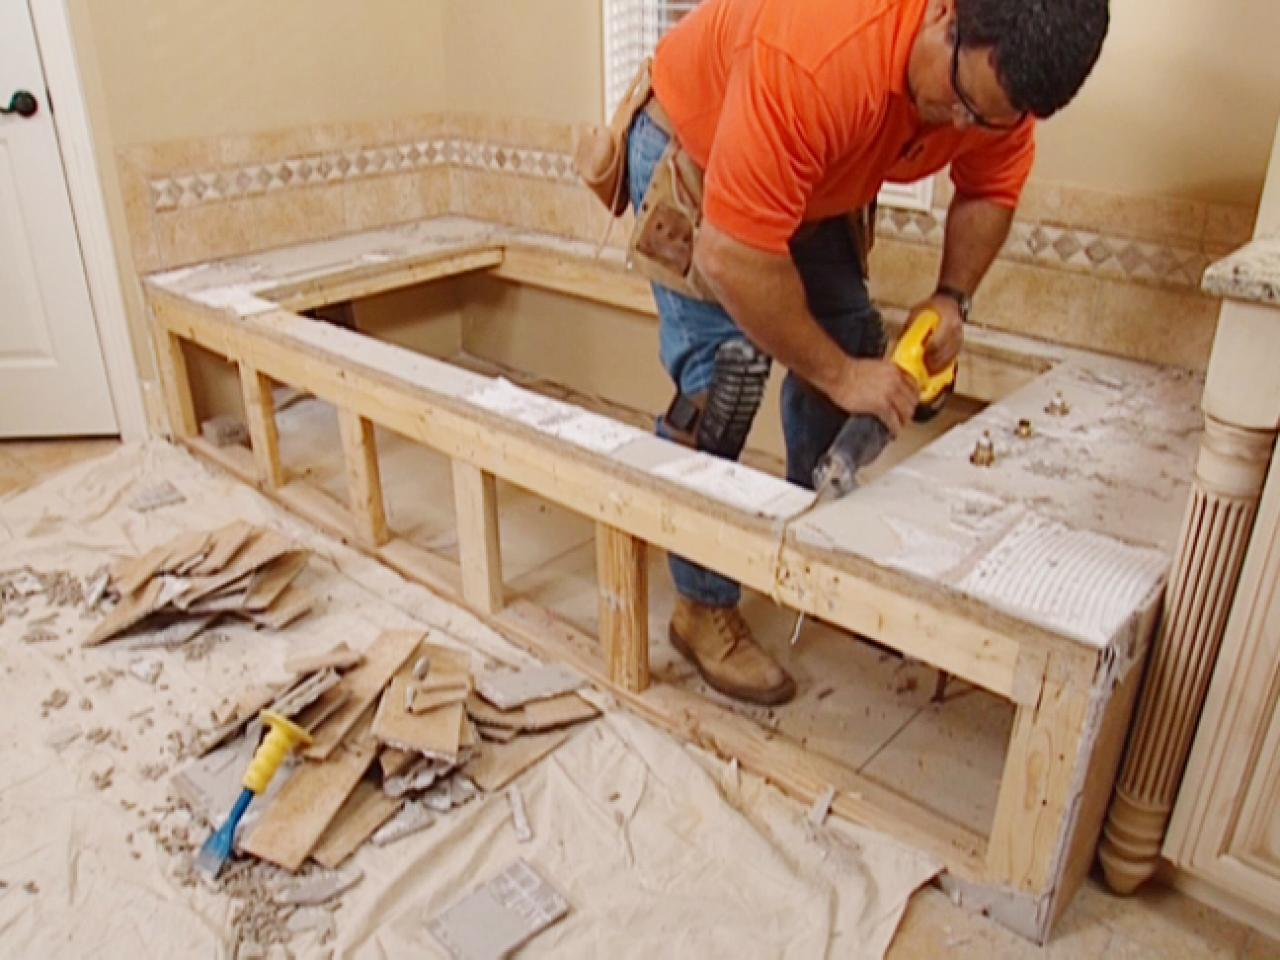 Claw Foot Tub Installation: Surround Demolition | how-tos ...